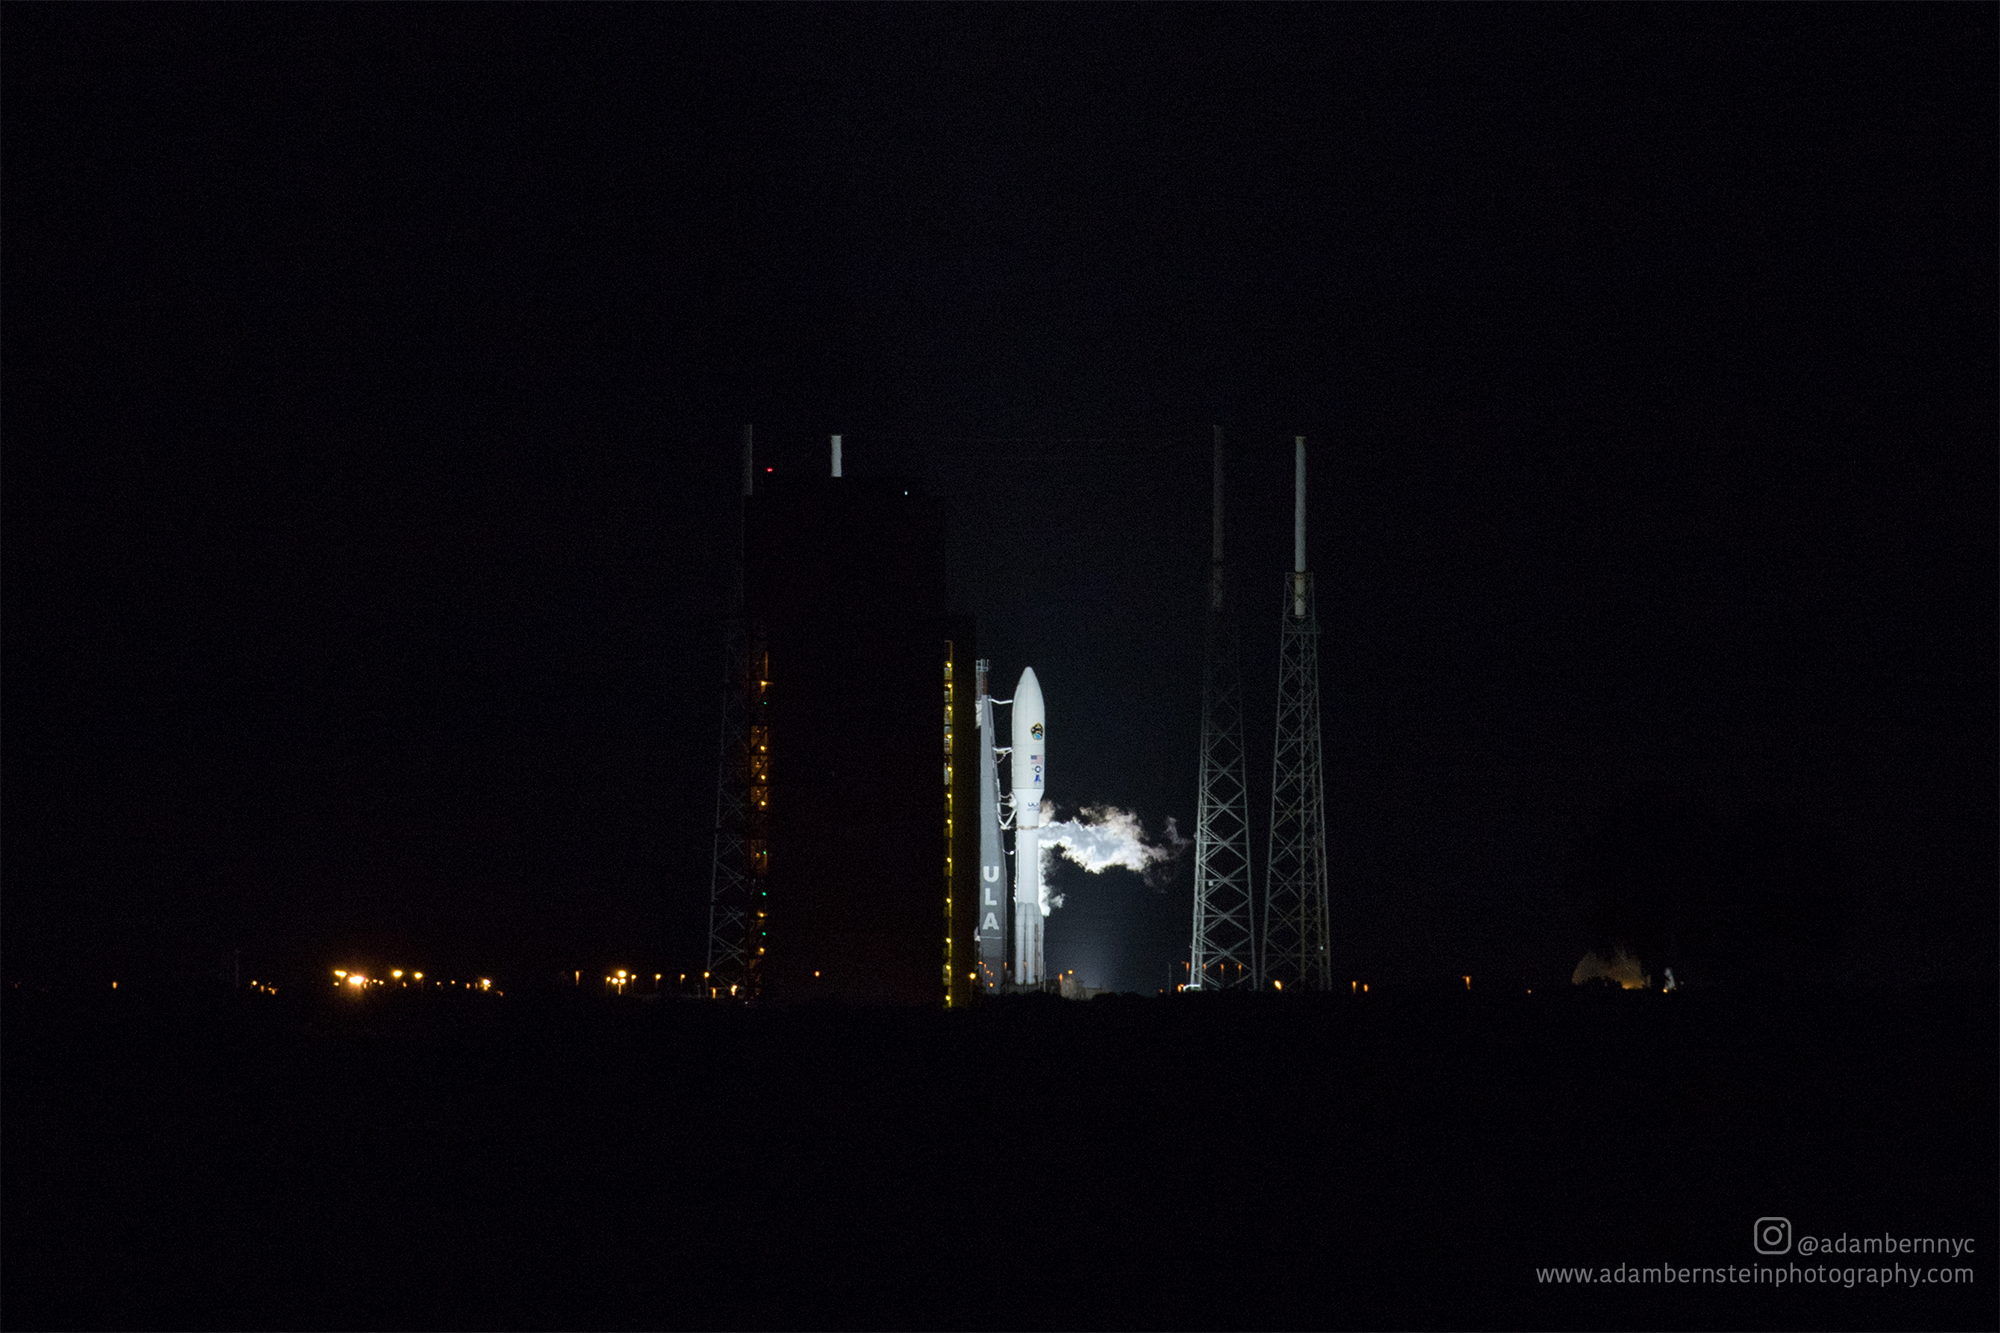 The Atlas V sits on the pad at night ahead of its originally scheduled 5:44 AM EDT launch time.